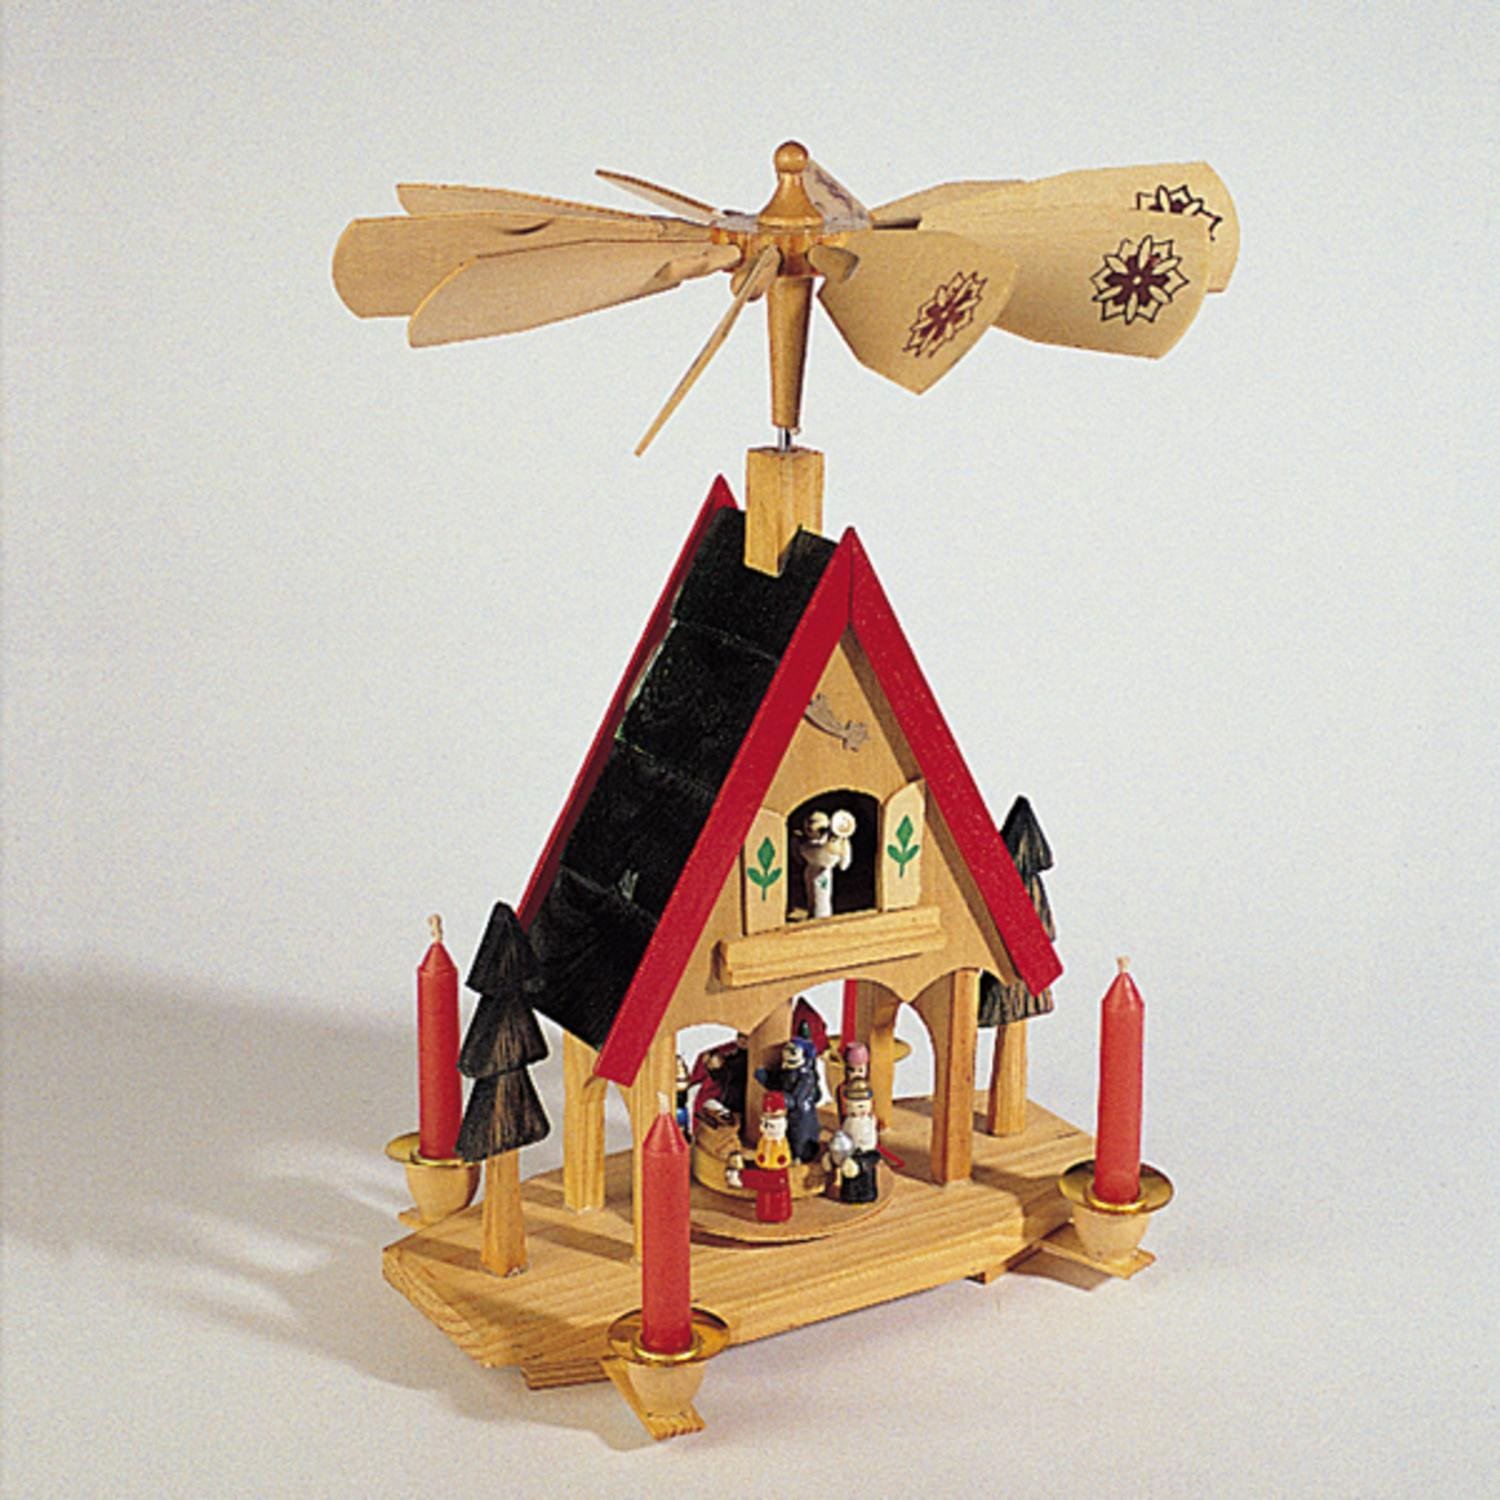 KSA 12'' Wooden Alpine Windmill Christmas Nativity Carousel Table Top Candle Holder